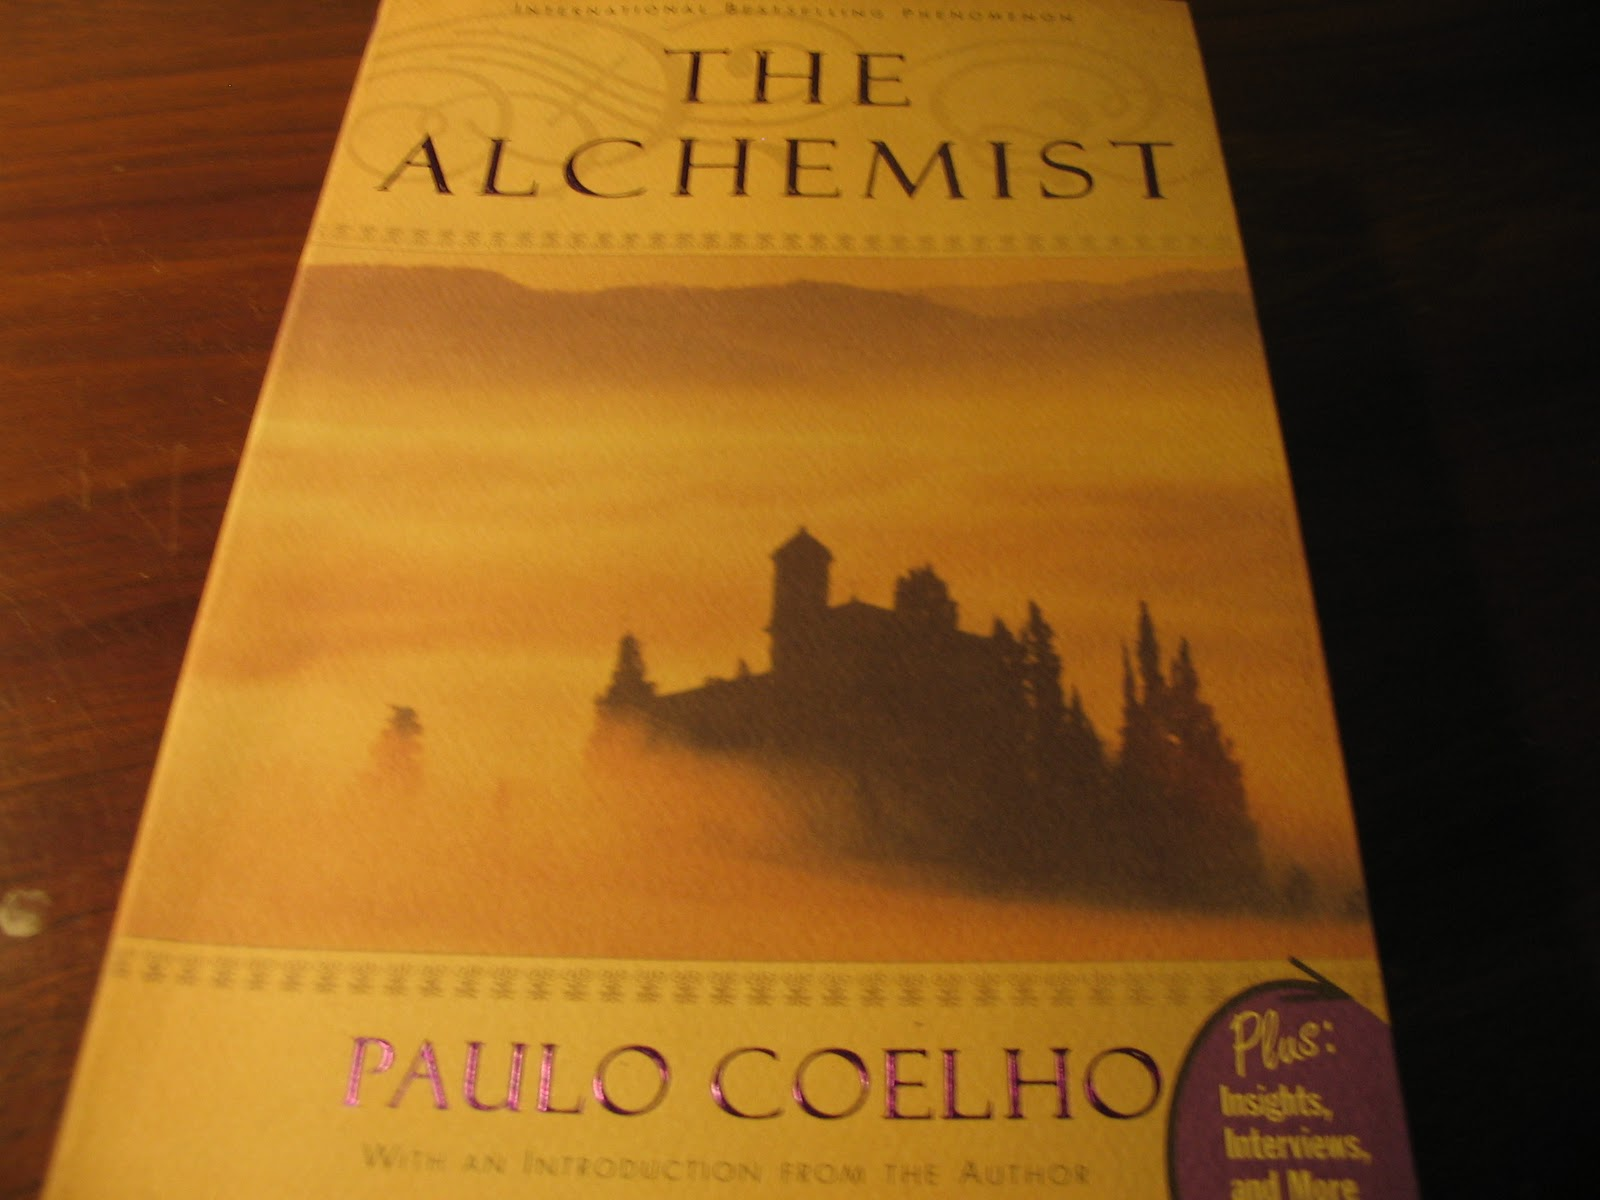 the alchemist by paulo coelho i am here to live out loud the alchemist by paulo coelho